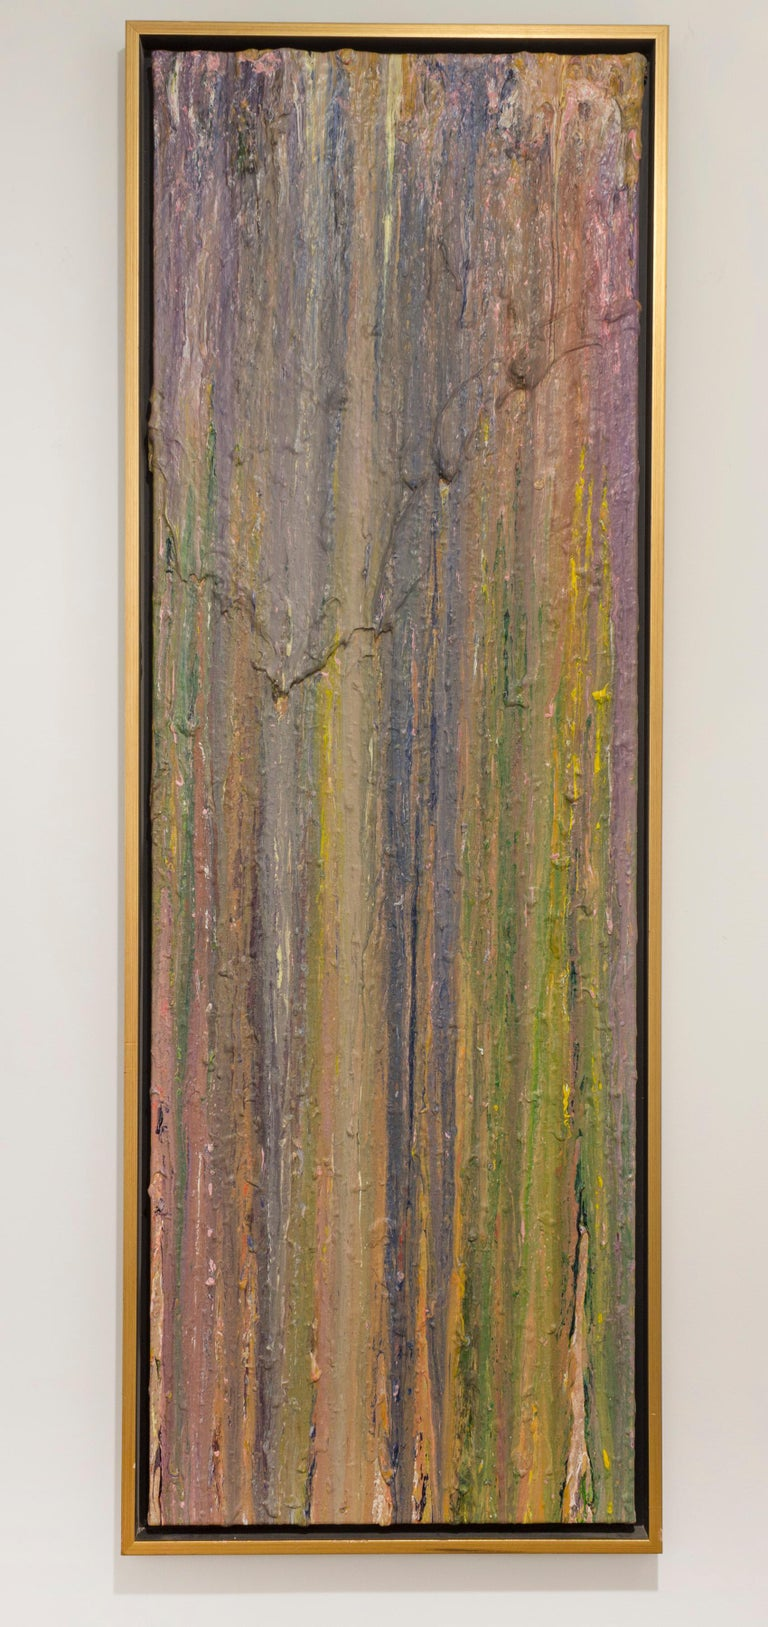 """LARRY POONS Bones Room, 1980 Acrylic on canvas 73-1/4 x 24-3/16 inches From the """"throw painting"""" series"""